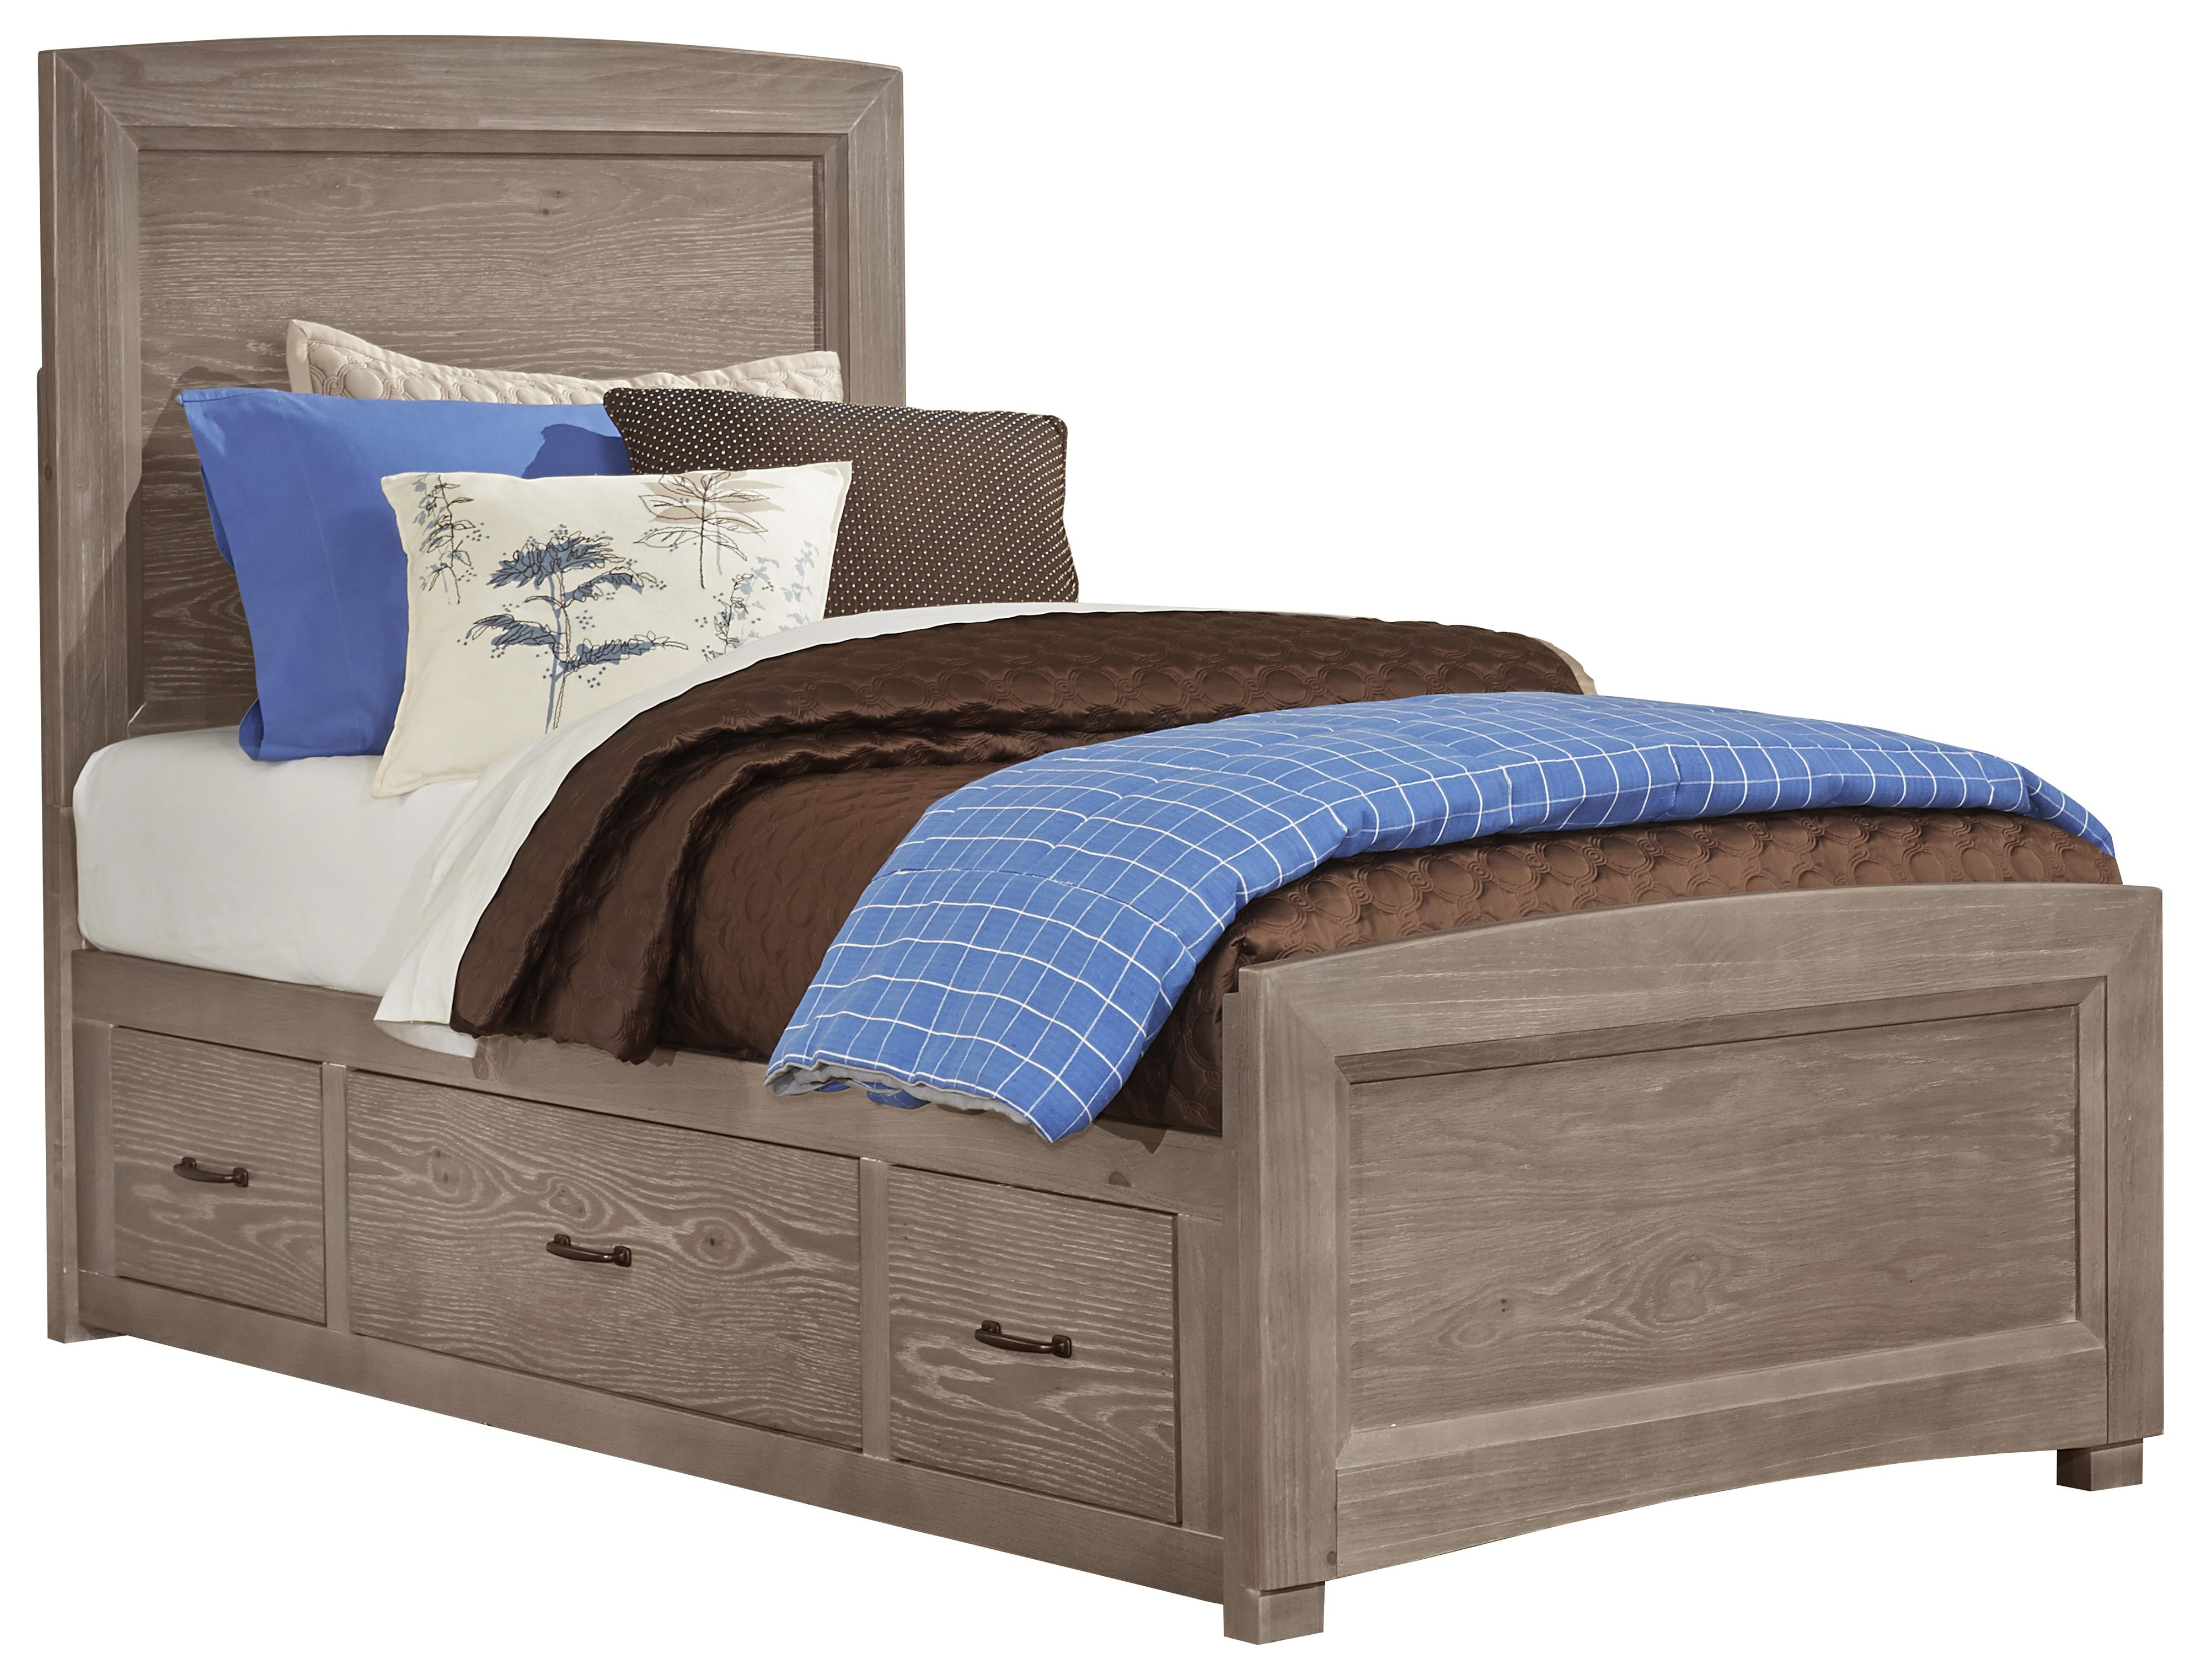 Transitions Twin Panel Bed with Underbed Storage by Vaughan Bassett at Lapeer Furniture & Mattress Center